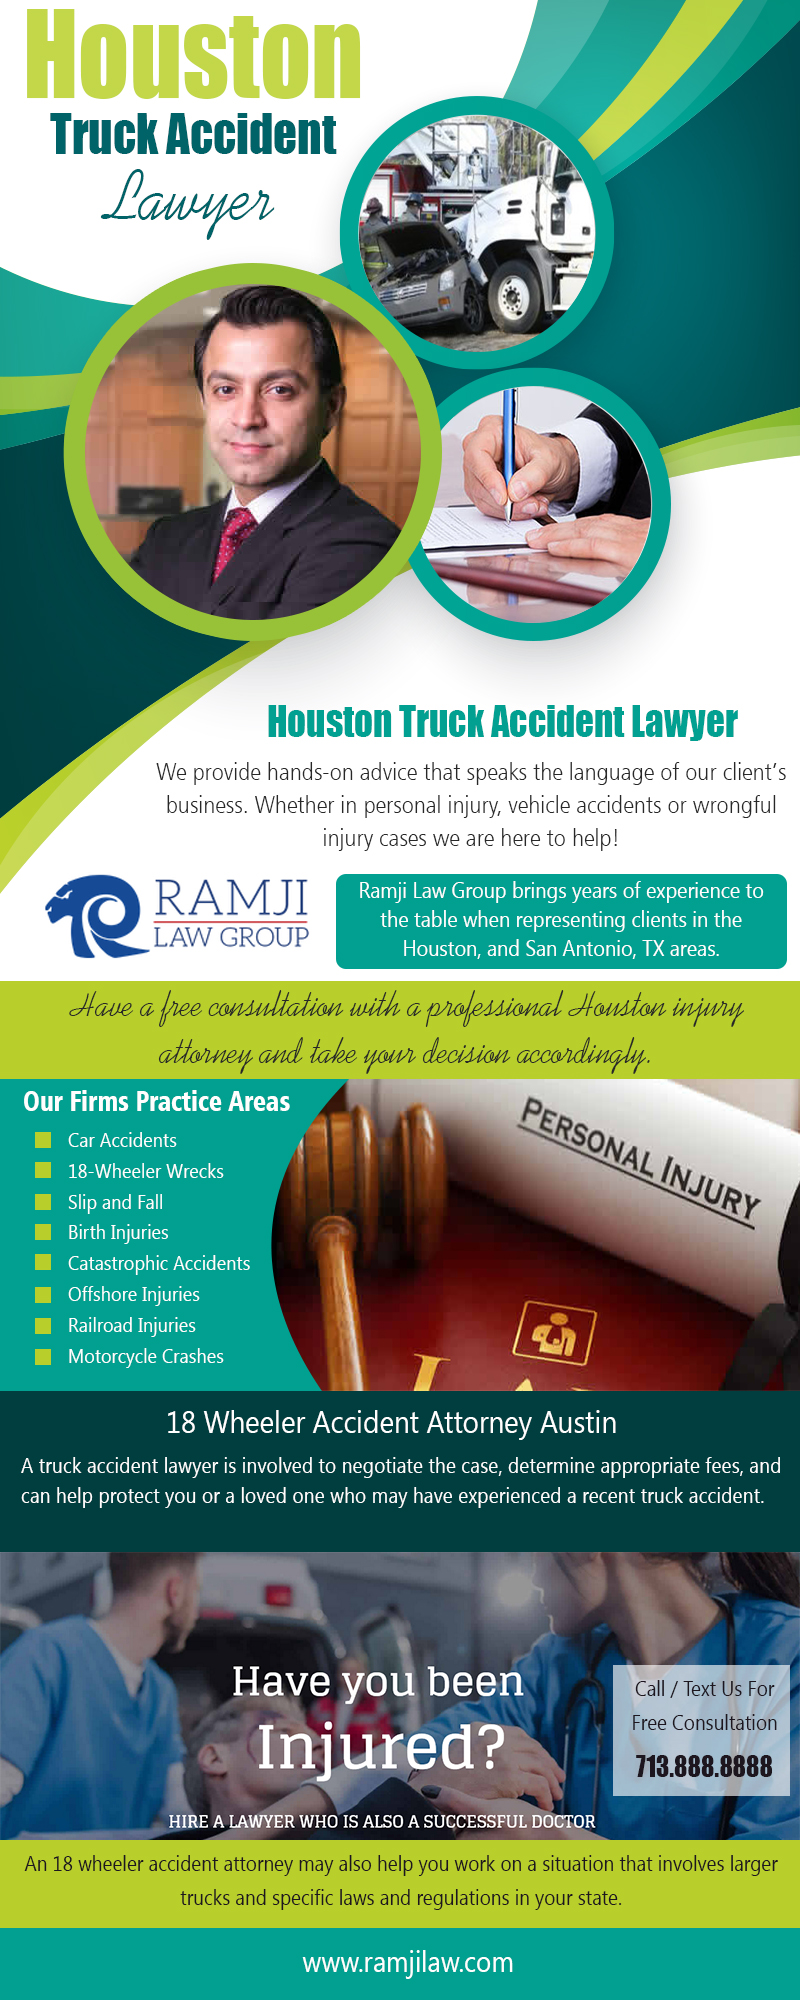 Houston Truck Accident Lawyer|https://www.ramjilaw.com/